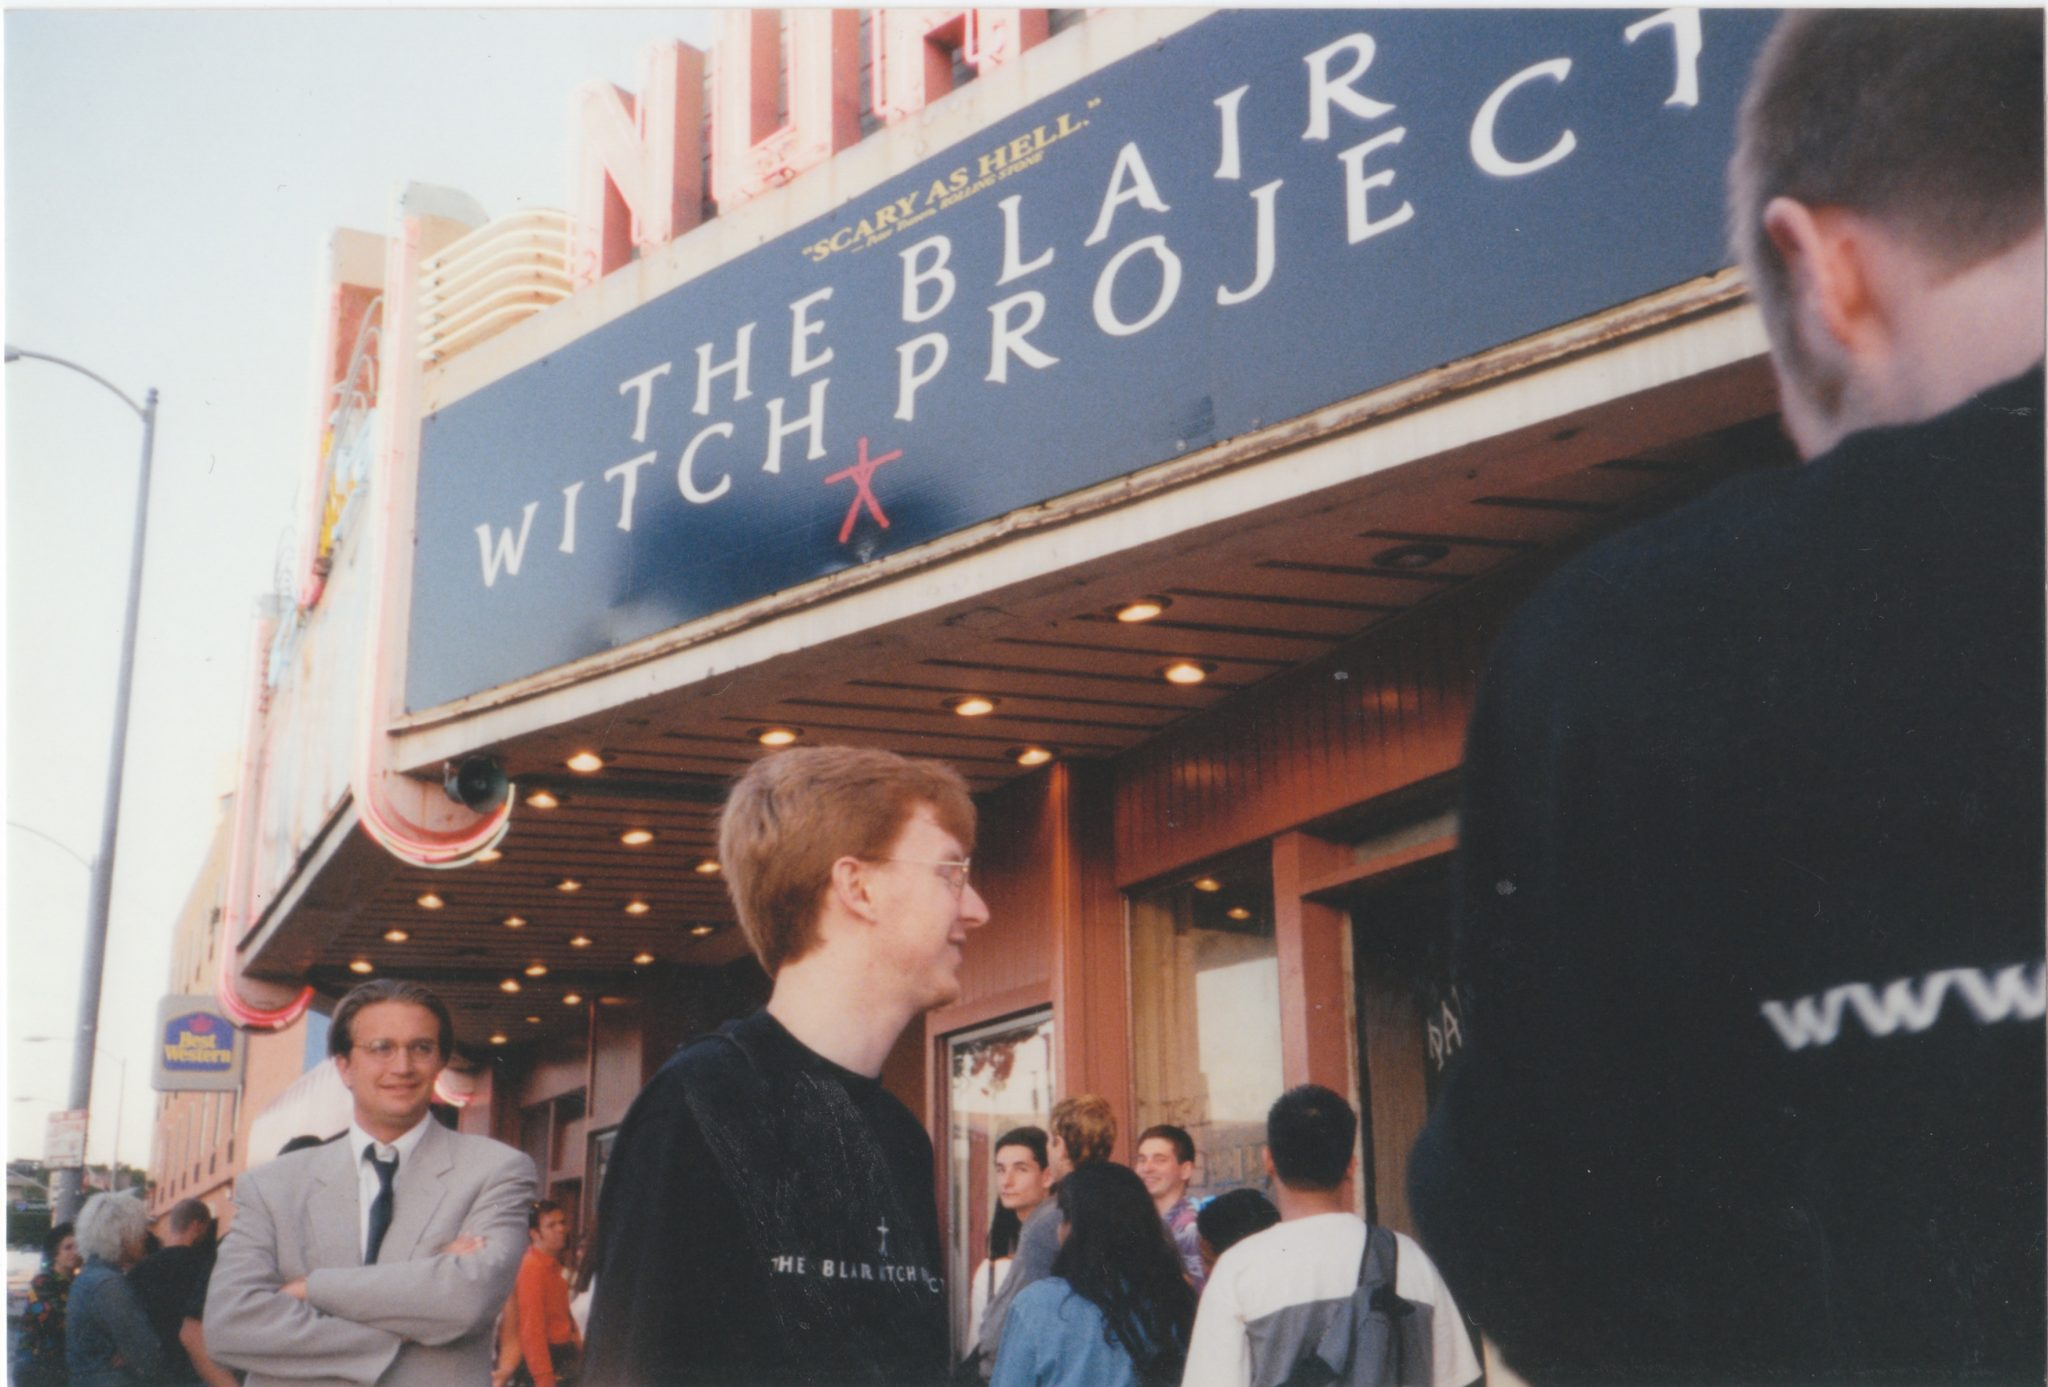 marquee - The Making of The Blair Witch Project: Part 7 - The Embiggening